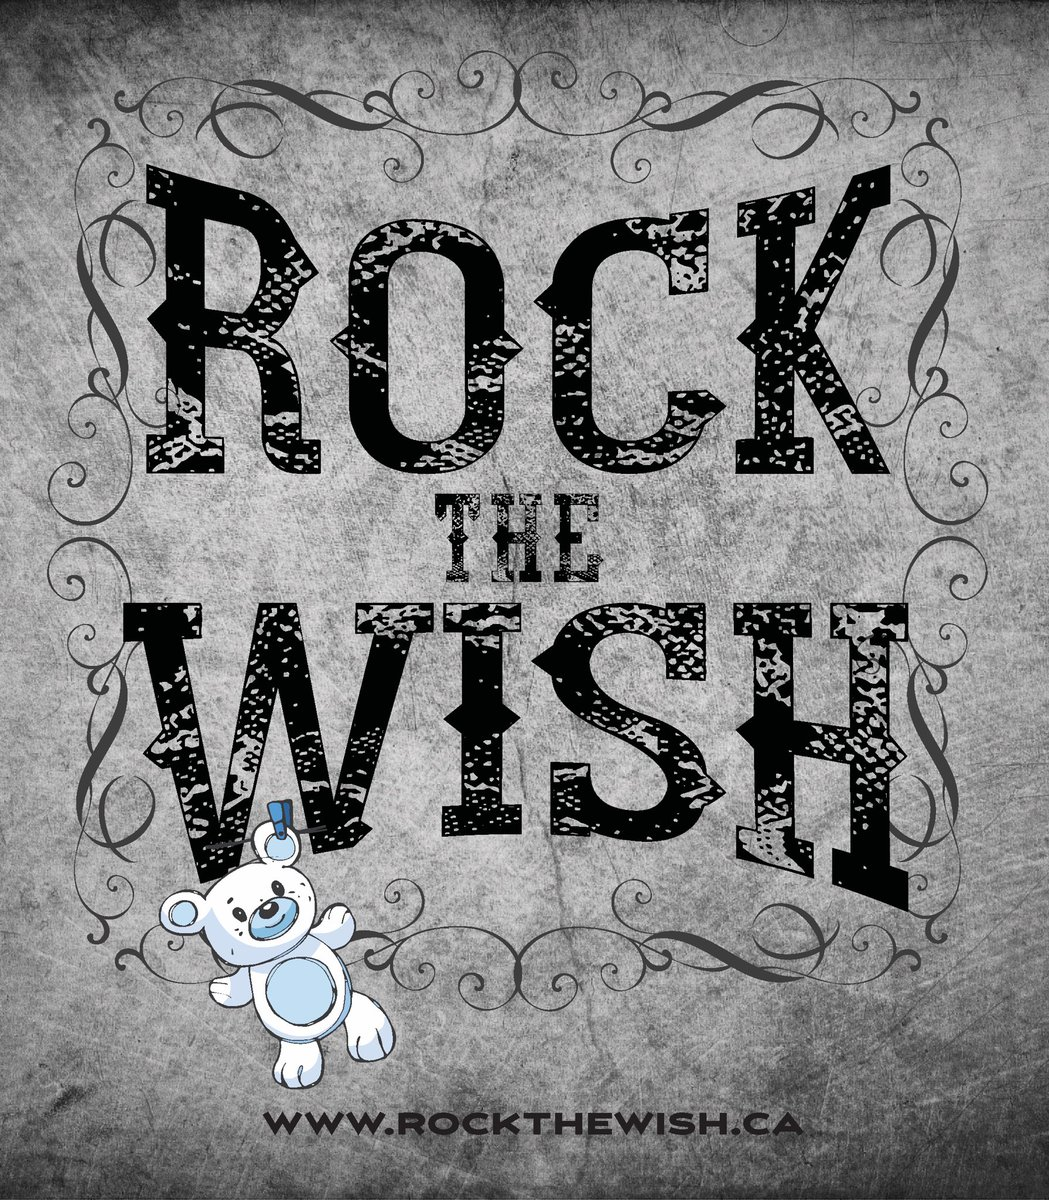 October 19, 2019 – Rock The Wish